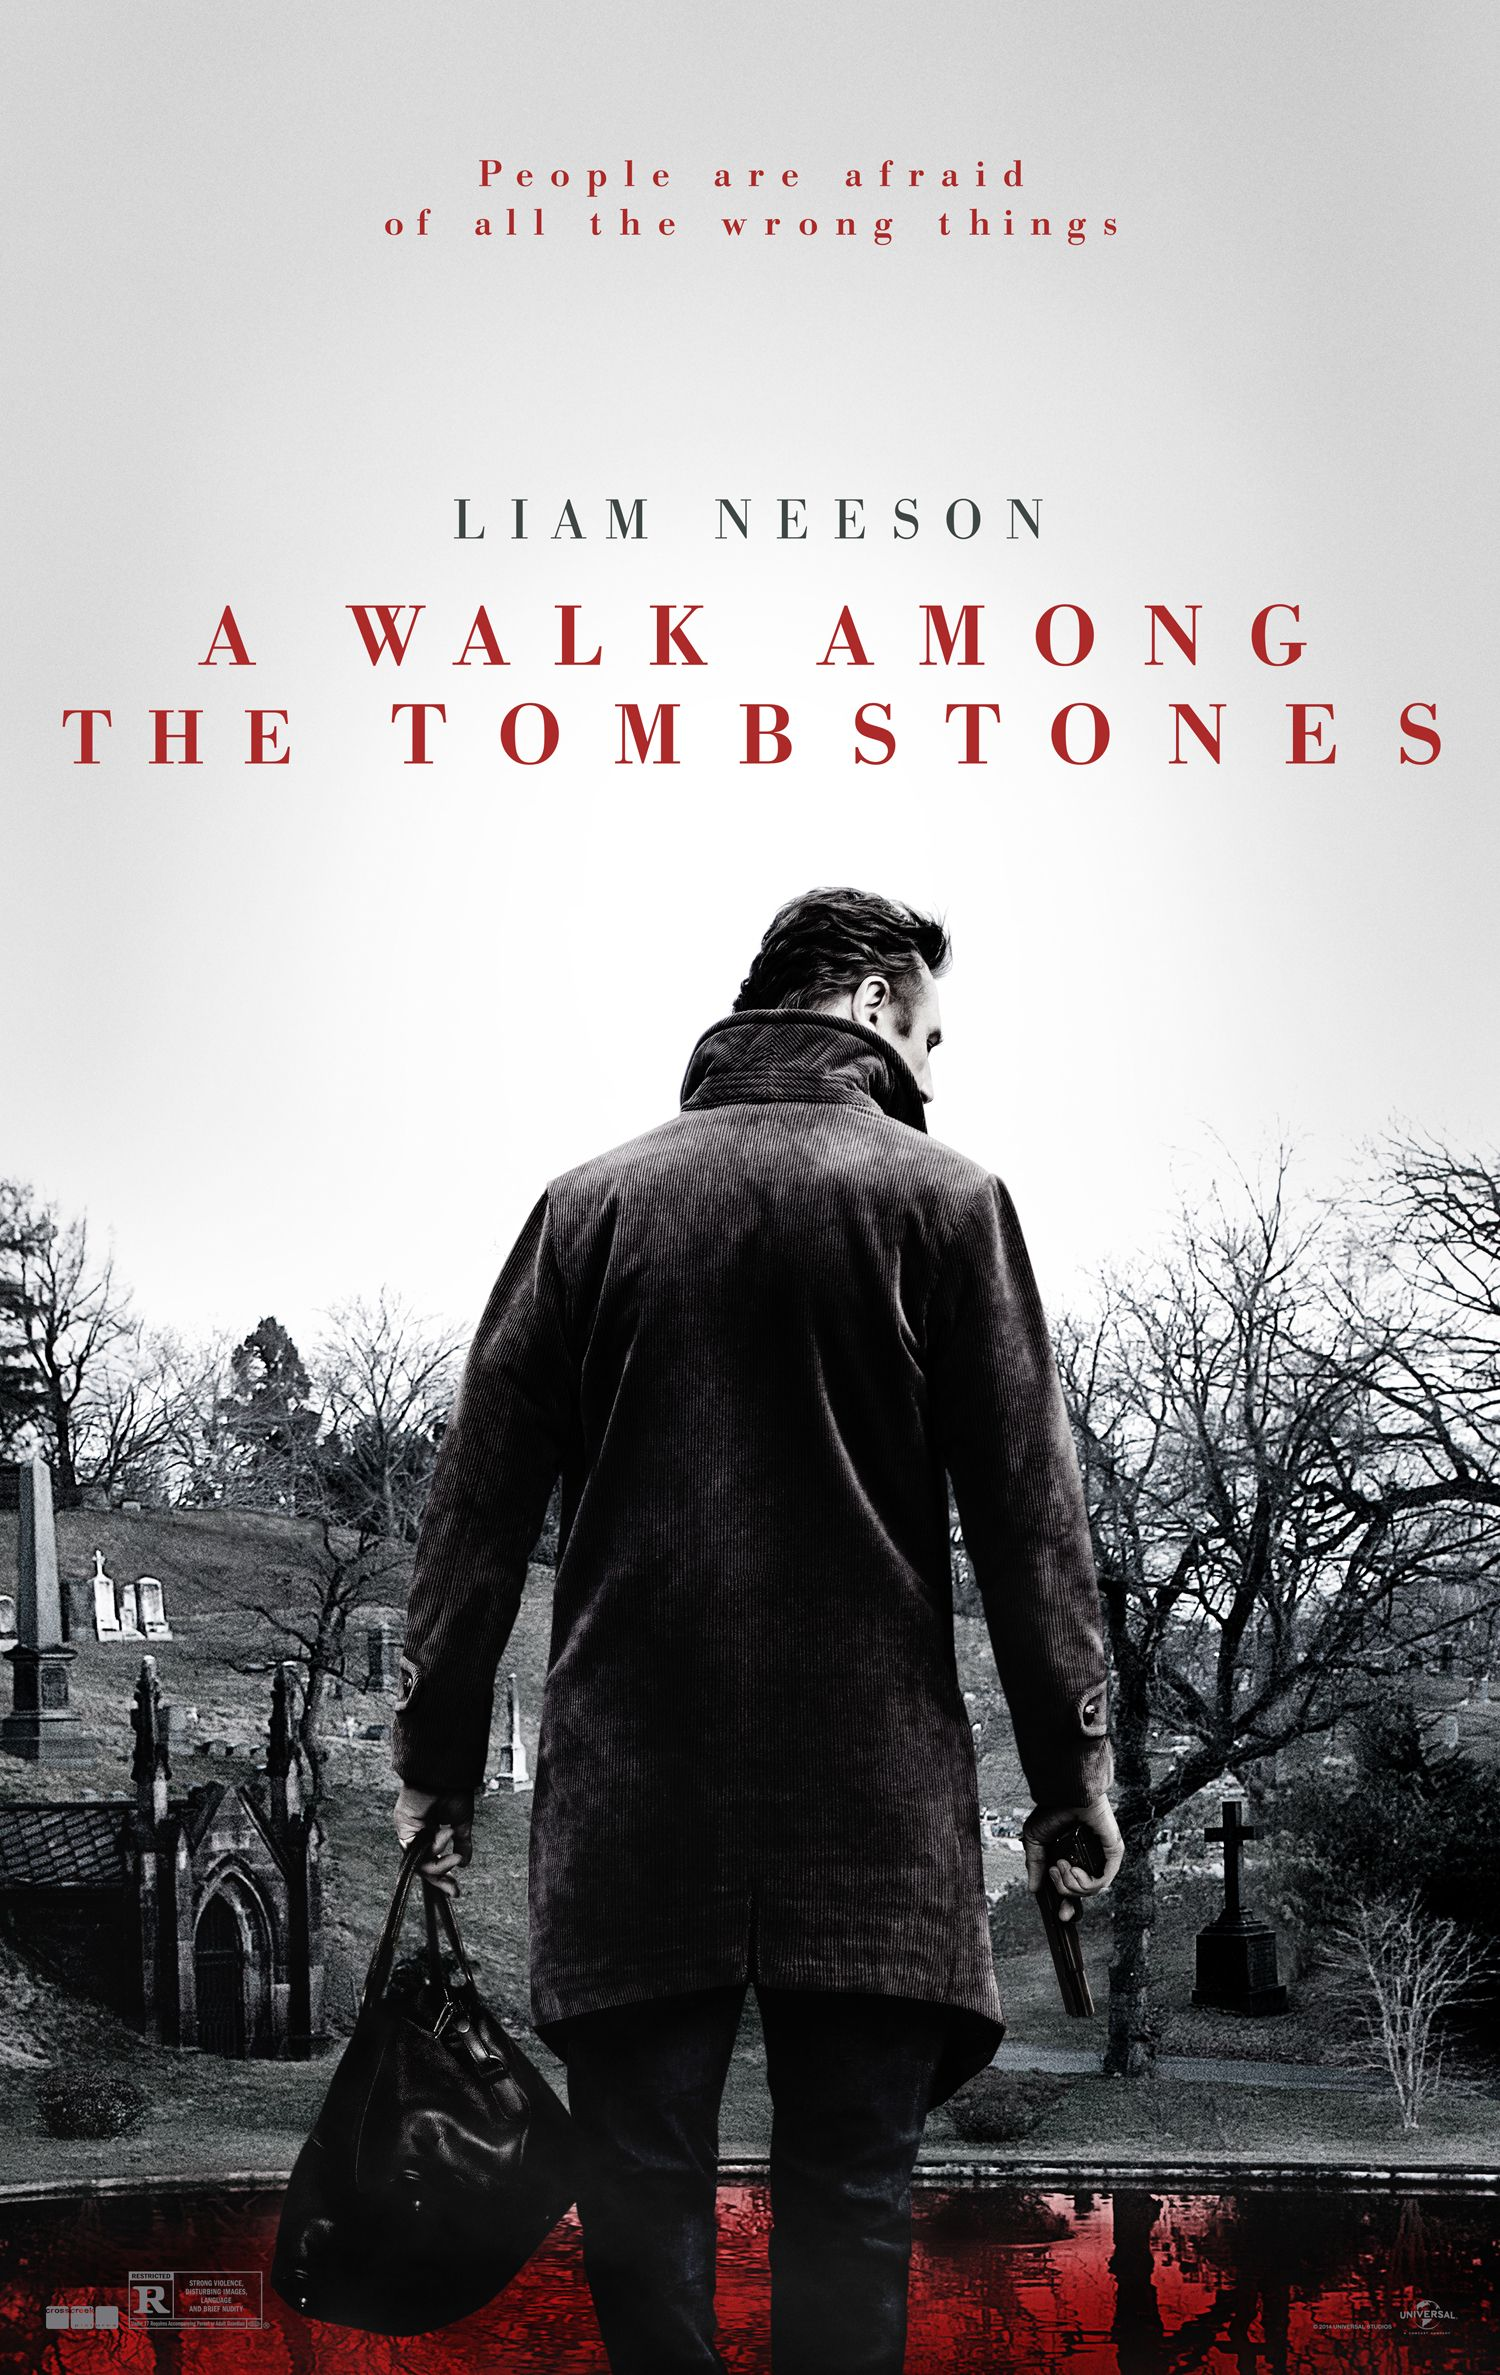 Liam Neeson Interview: A Walk Among the Tombstones | Collider